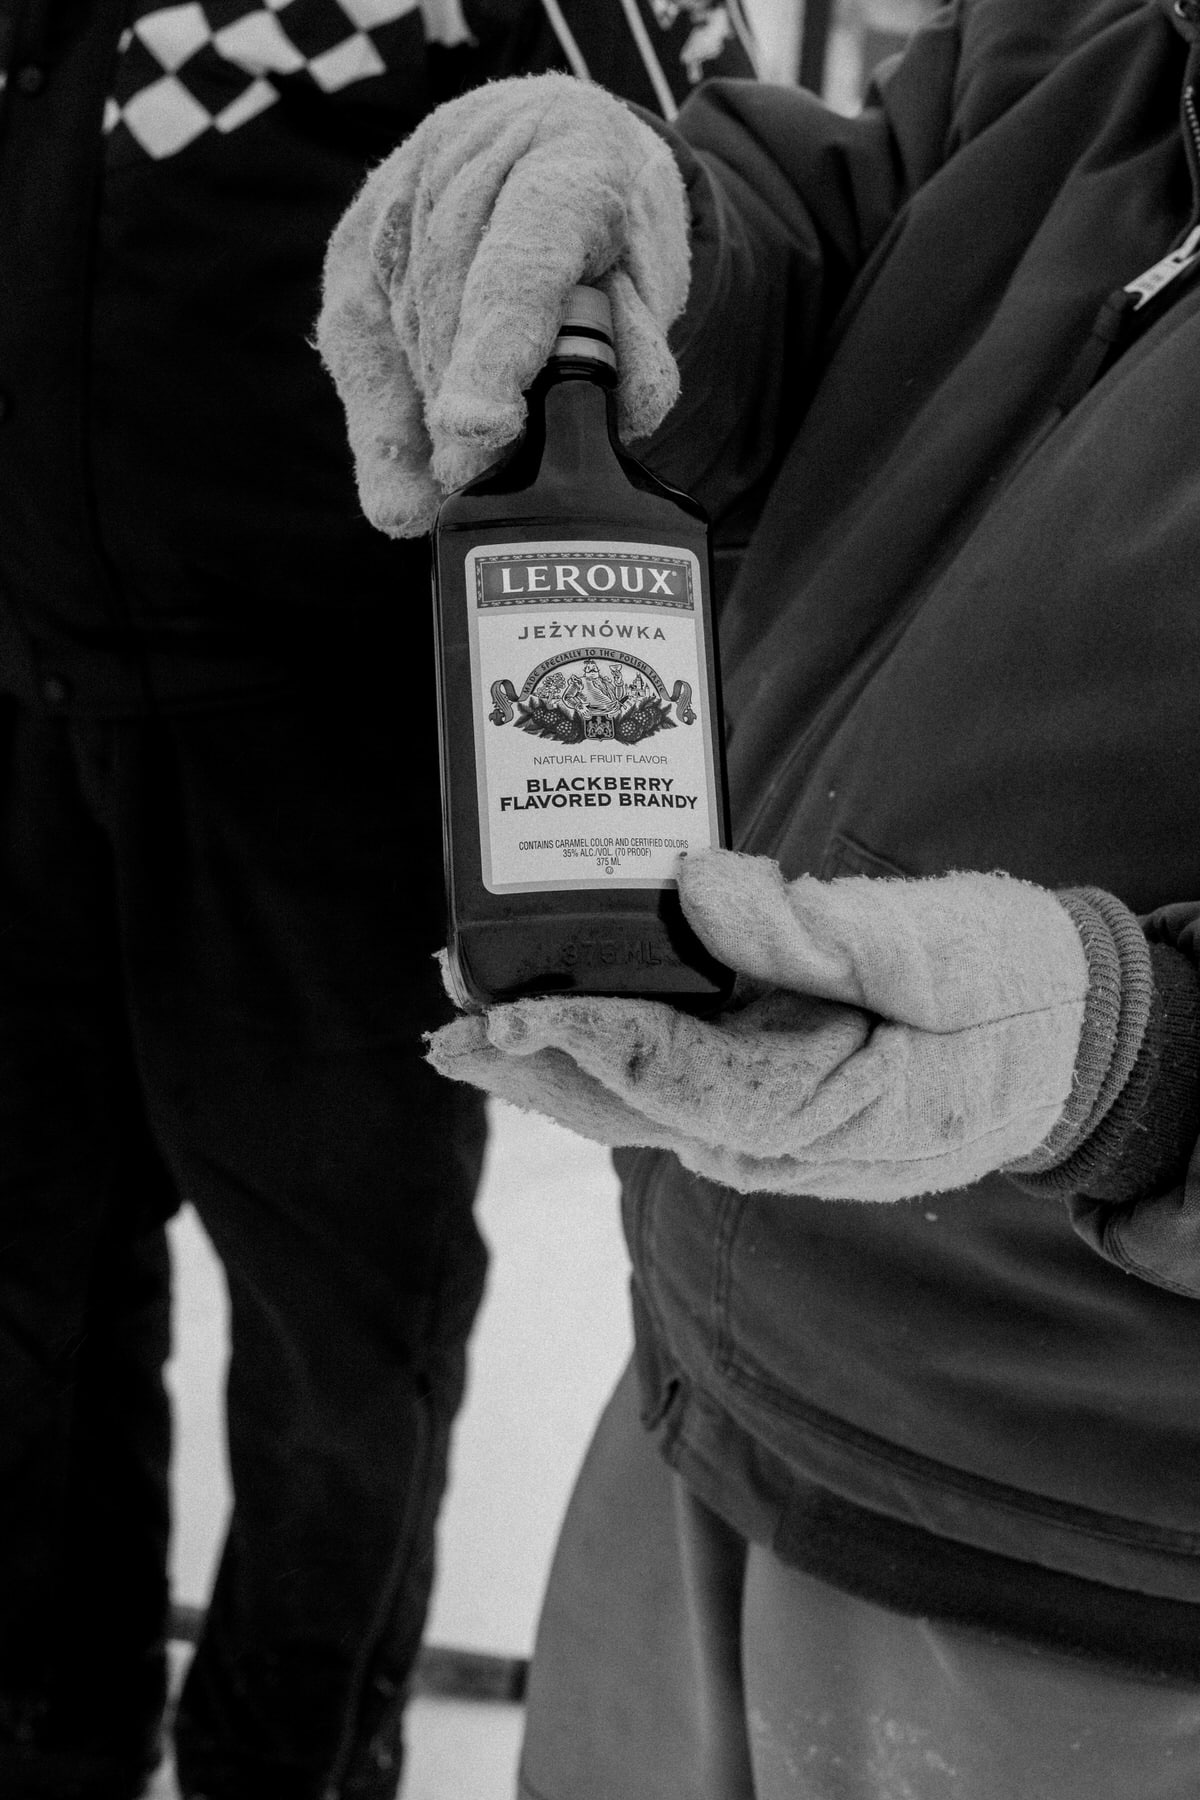 Lake-Winnebago-sturgeon-spearing-Fond-du-Lac-Wisconsin-black-and-white-fine-art-photography-by-Studio-L-photographer-Laura-Schneider-_0052